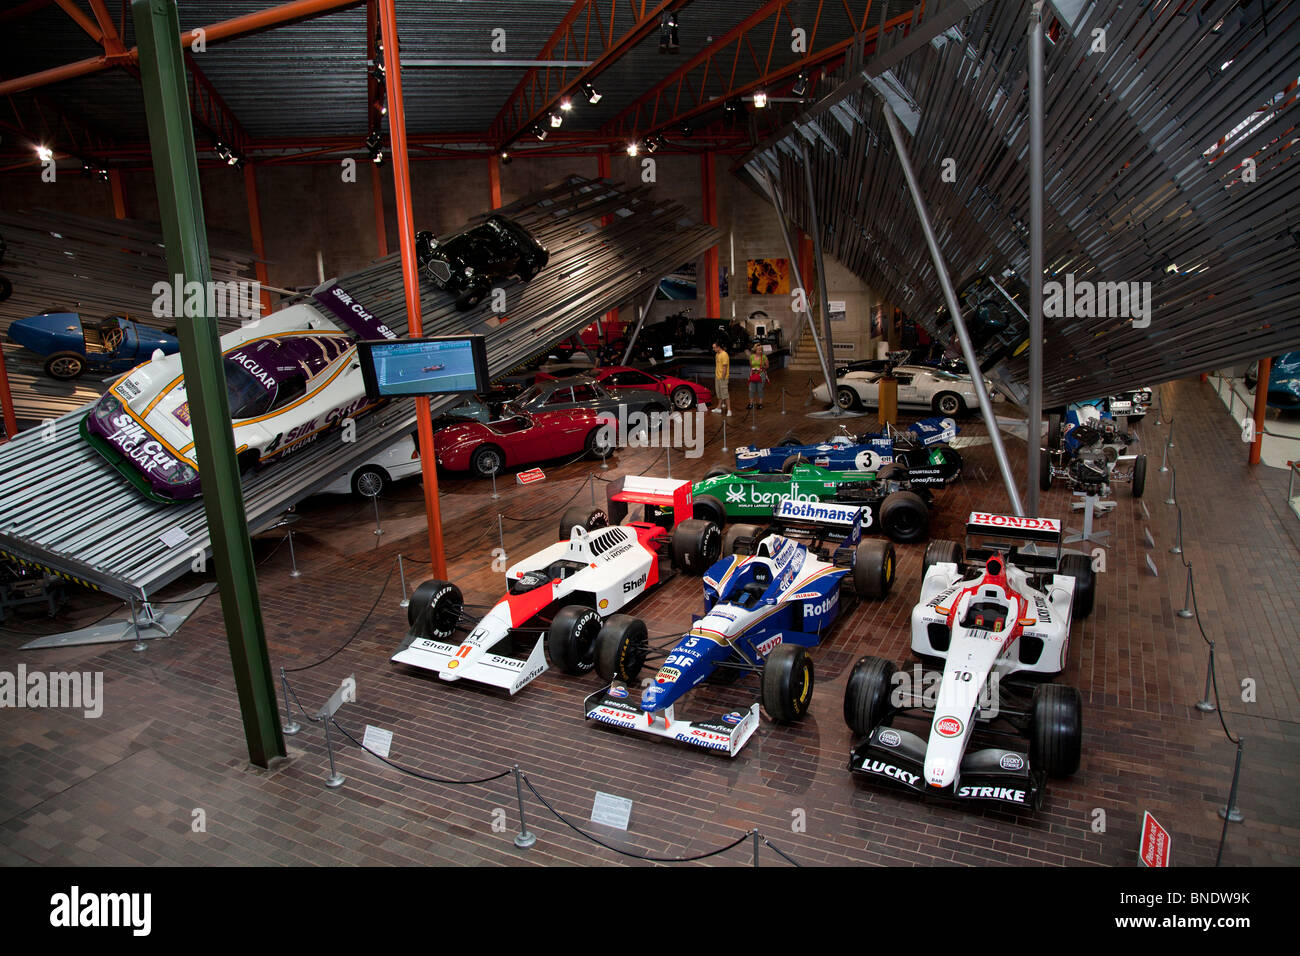 vehicles in the beaulieu motor museum racing cars including formula 1 stock photo 30423391 alamy. Black Bedroom Furniture Sets. Home Design Ideas